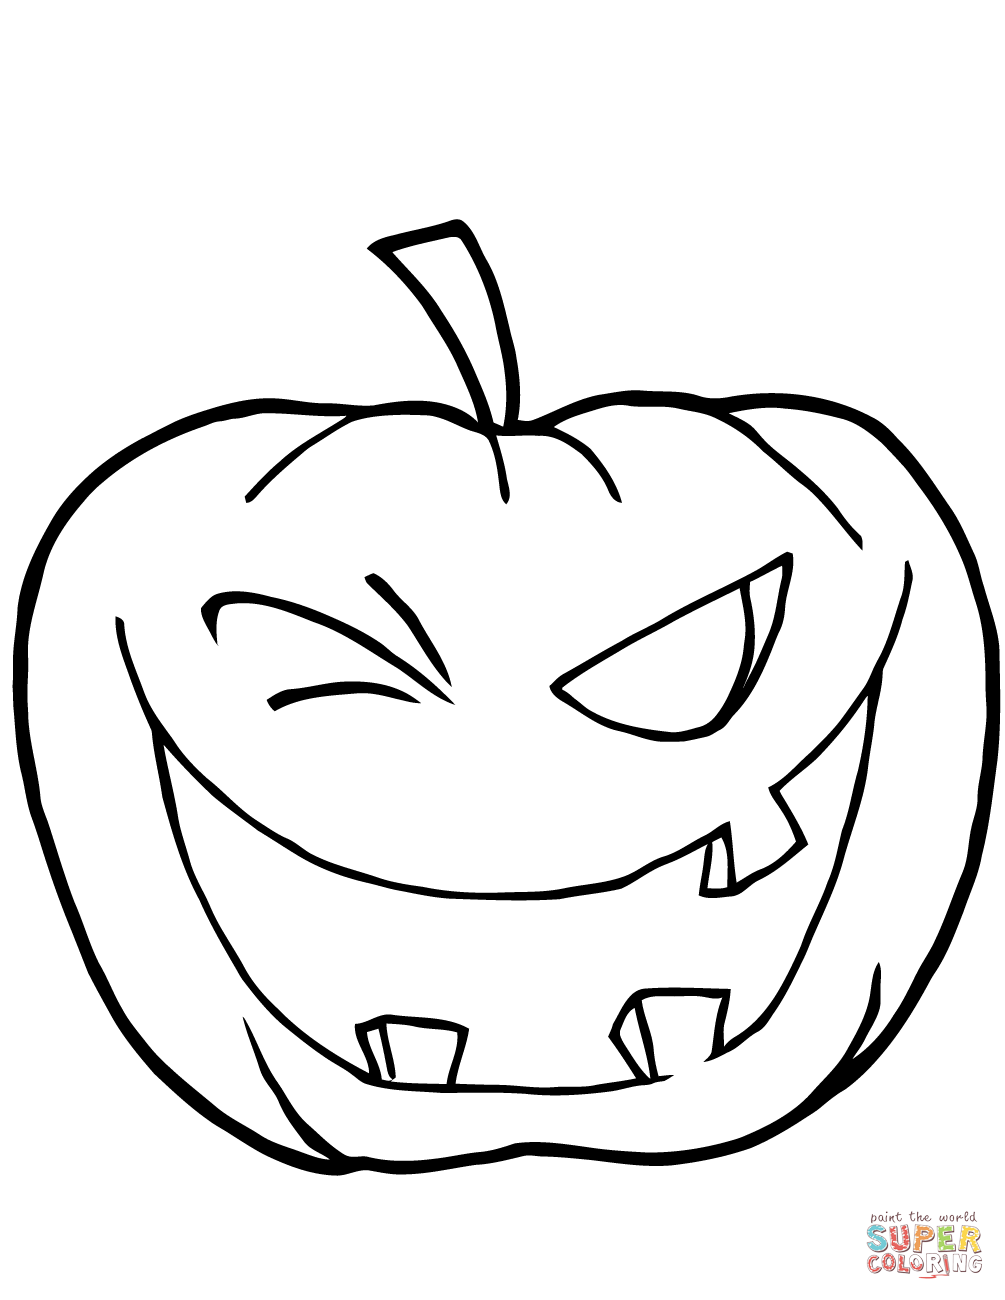 Halloween Pumpkin Clipart Black And White.Pumpkin Cartoon Drawing At Getdrawings Com Free For